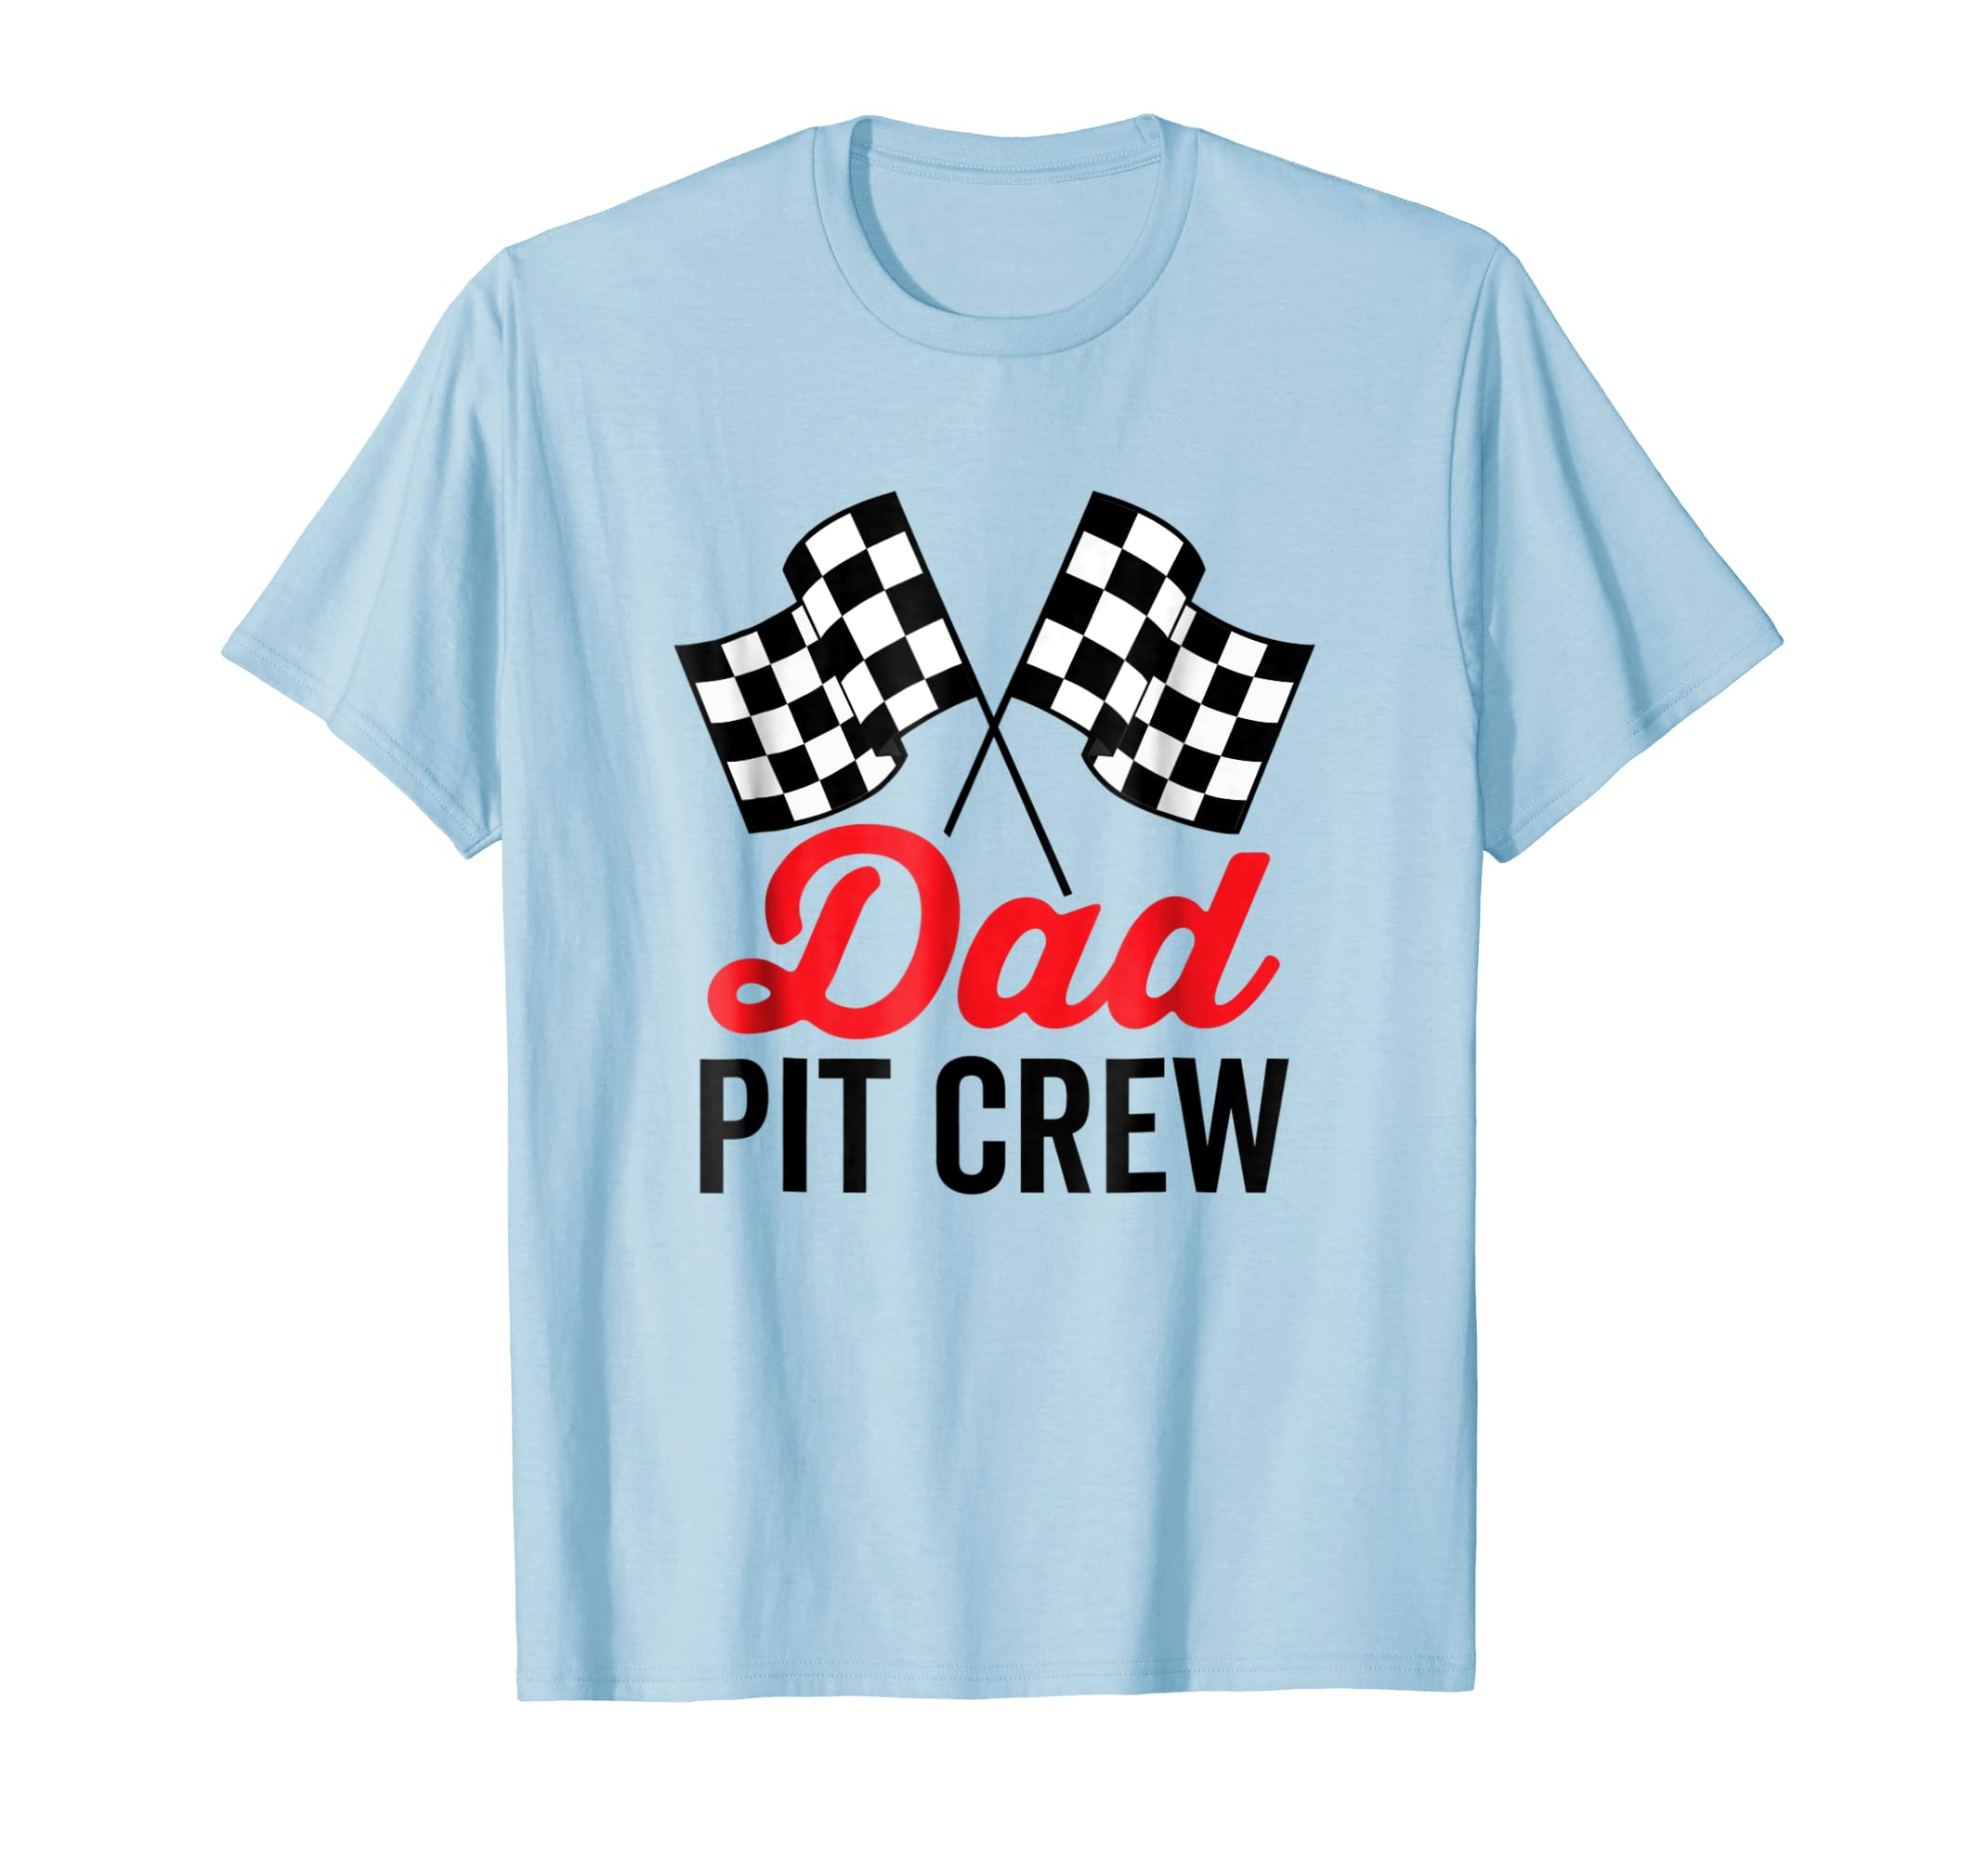 Dad Pit Crew Shirt for Racing Party Costume-azvn